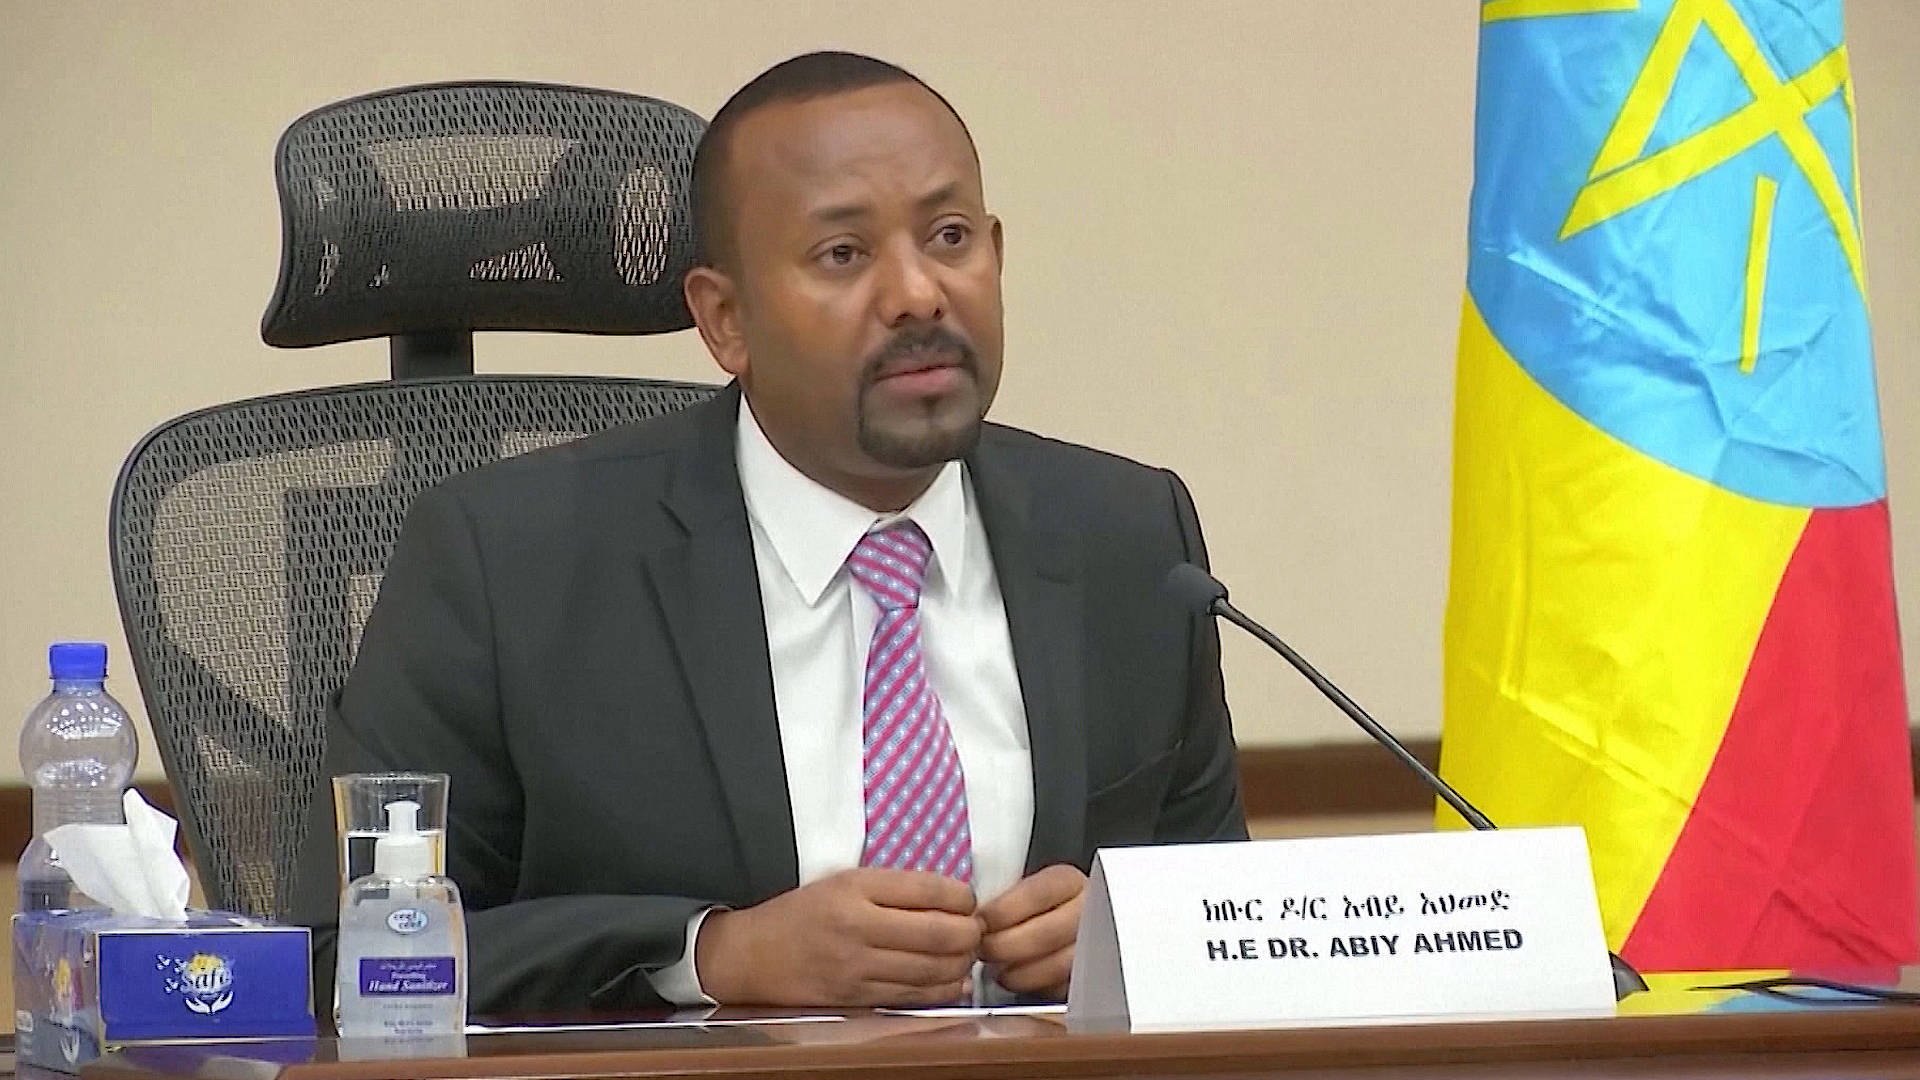 """Read more about the article """"He Was Defeated"""": Ethiopian PM Withdraws from Tigray After Months of Civil War, as Famine Looms"""